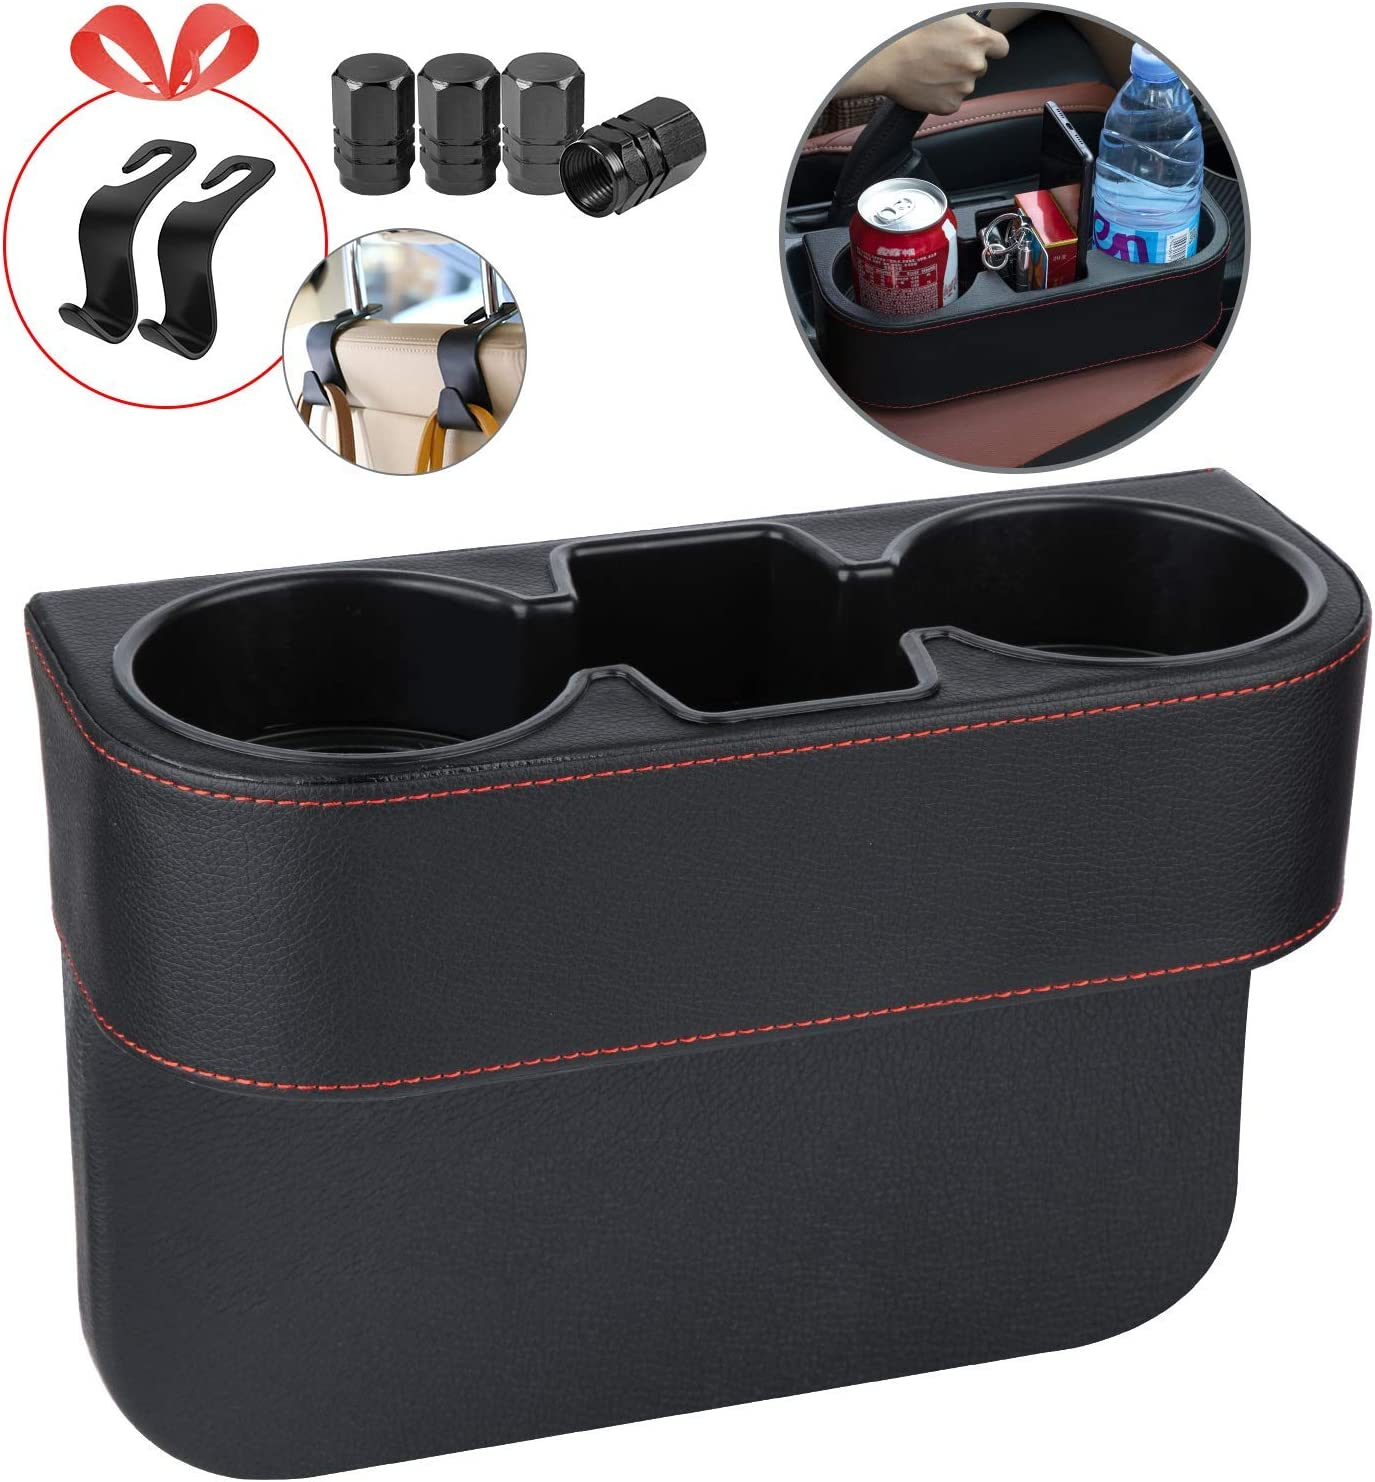 Homesprit Car Topics on TV Cup Holder with Gap Seat Phone Filler National products